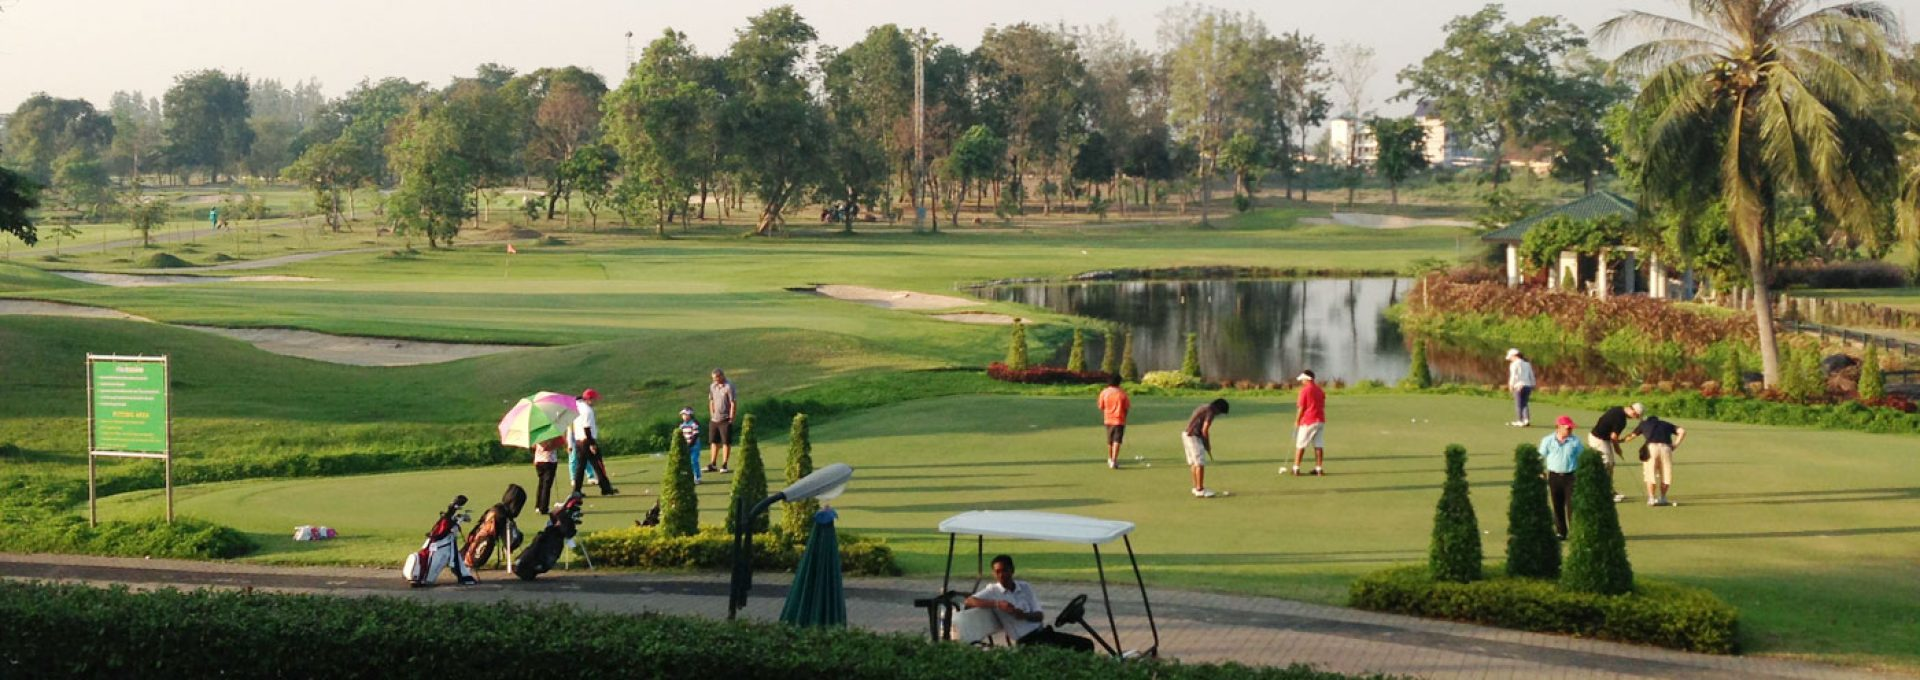 Thailand Golf School